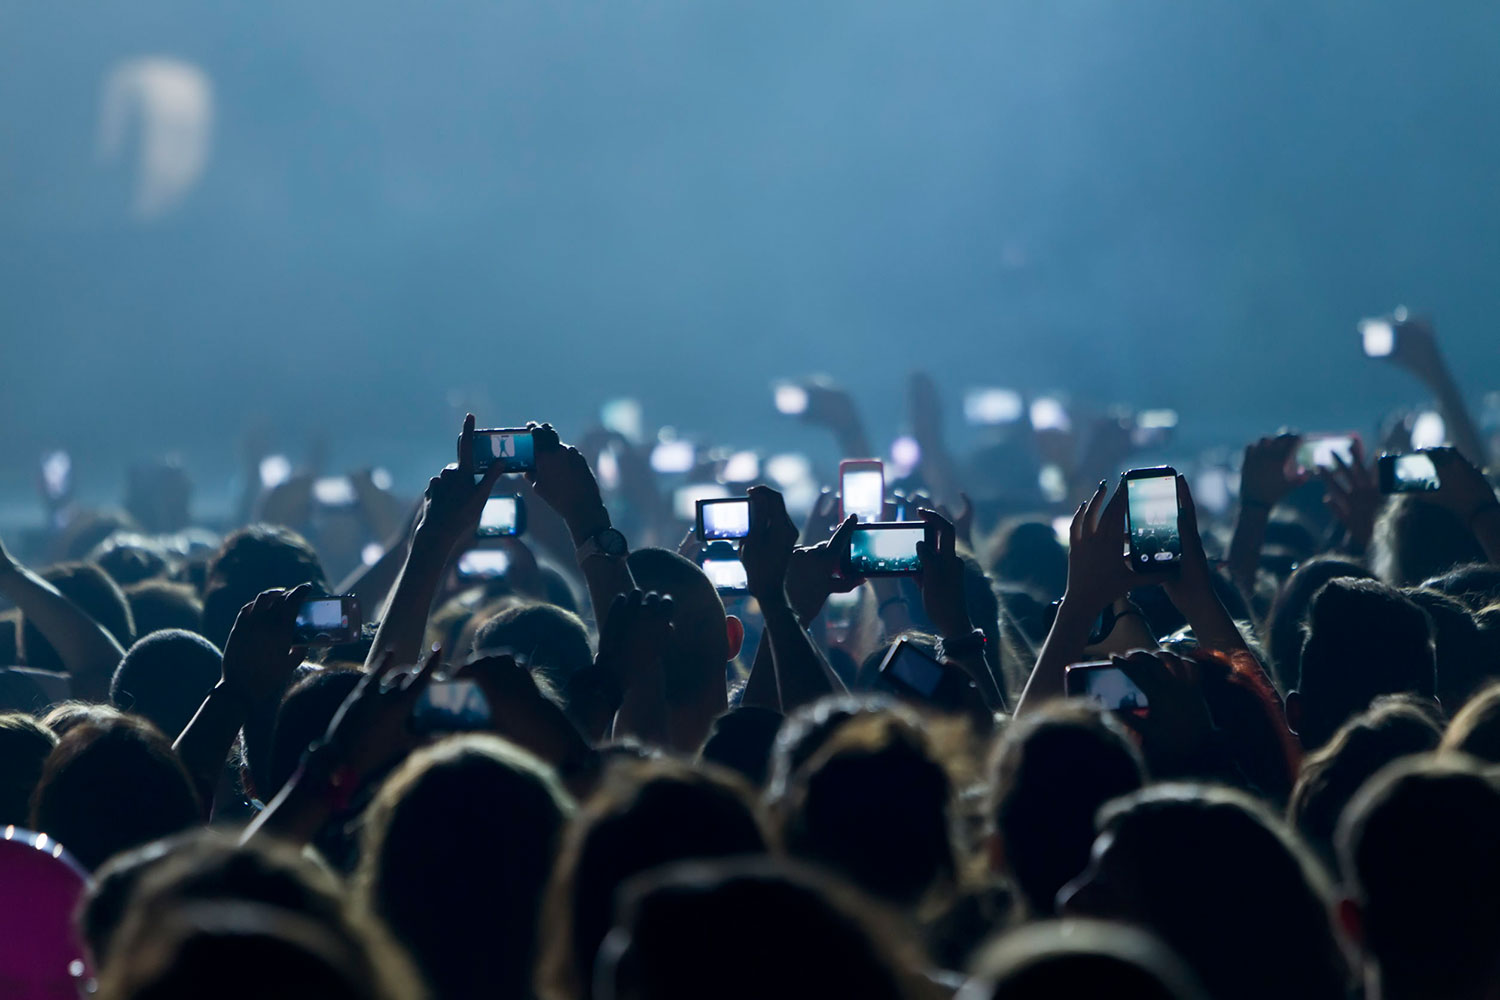 Phones-in-crowd